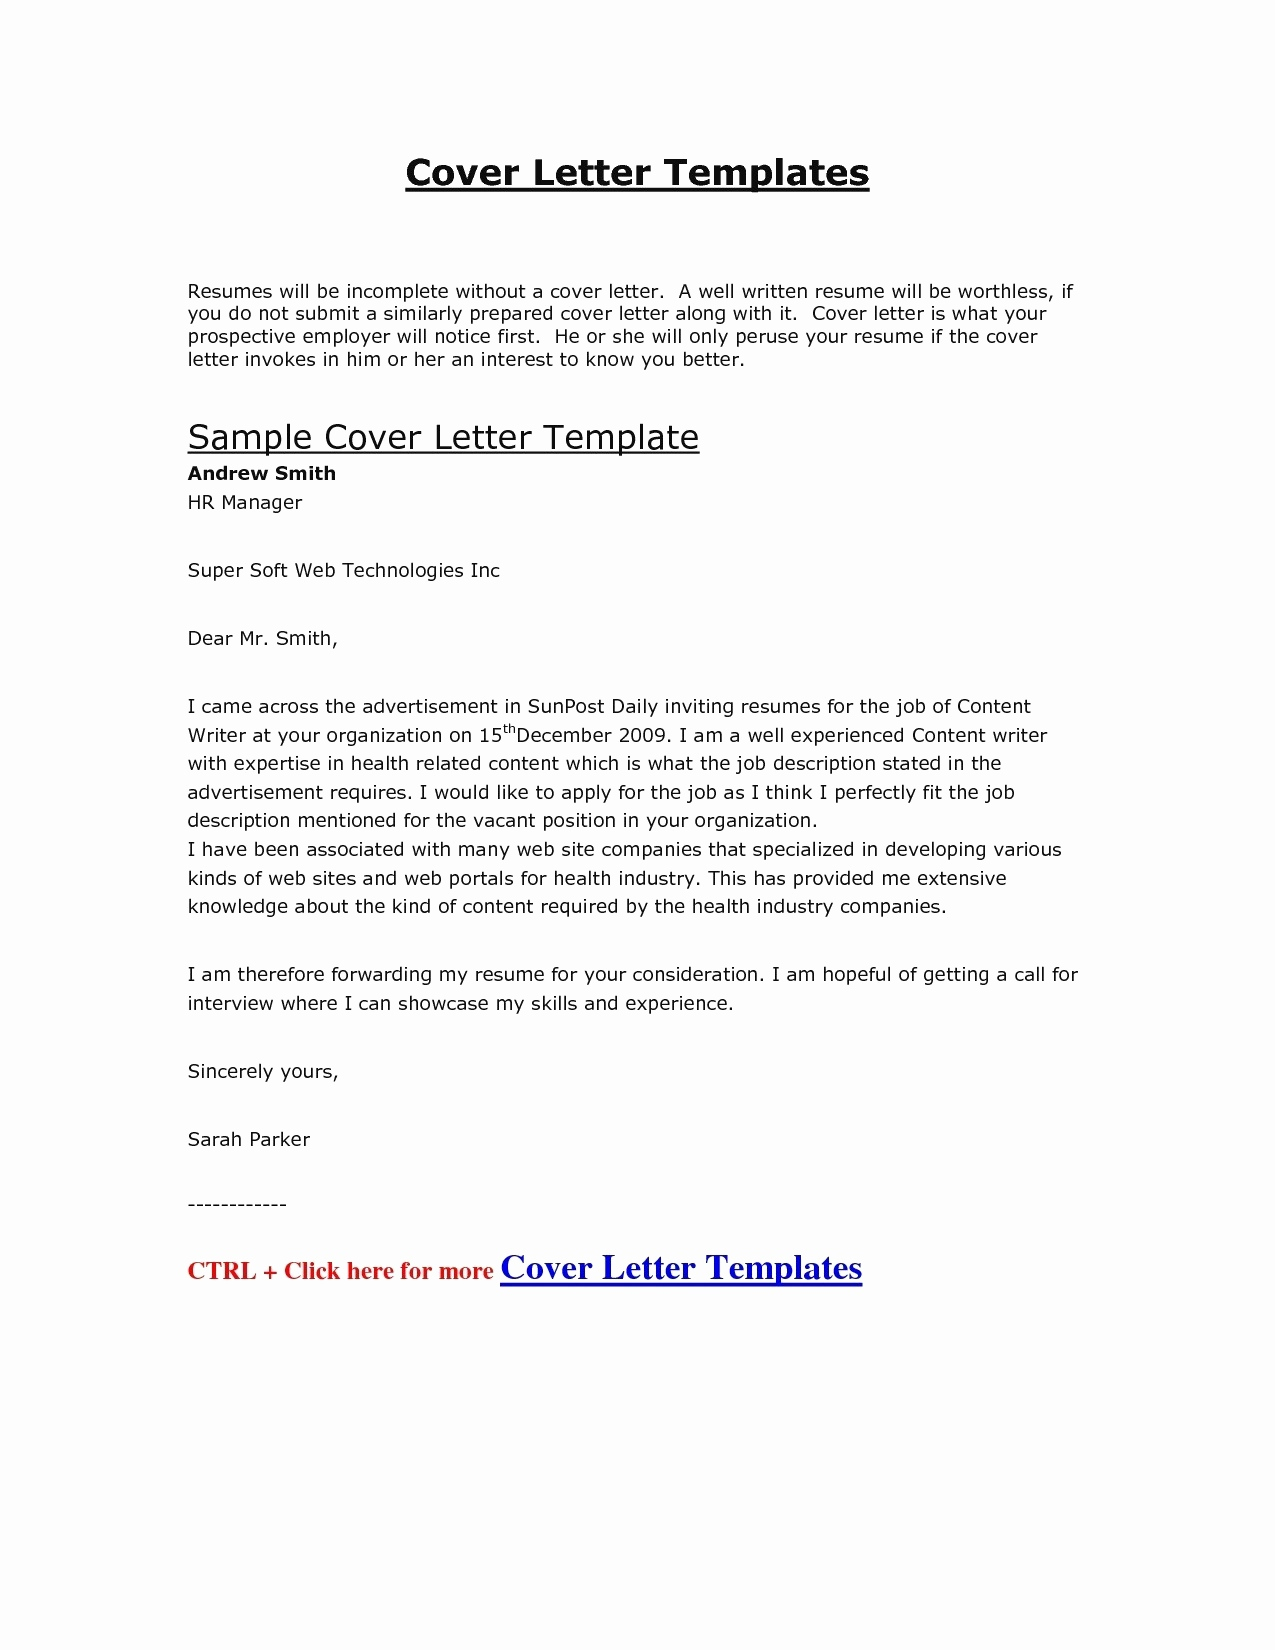 Writing A Cover Letter Template - Good Cover Letter Examples Inspirational Job Application format